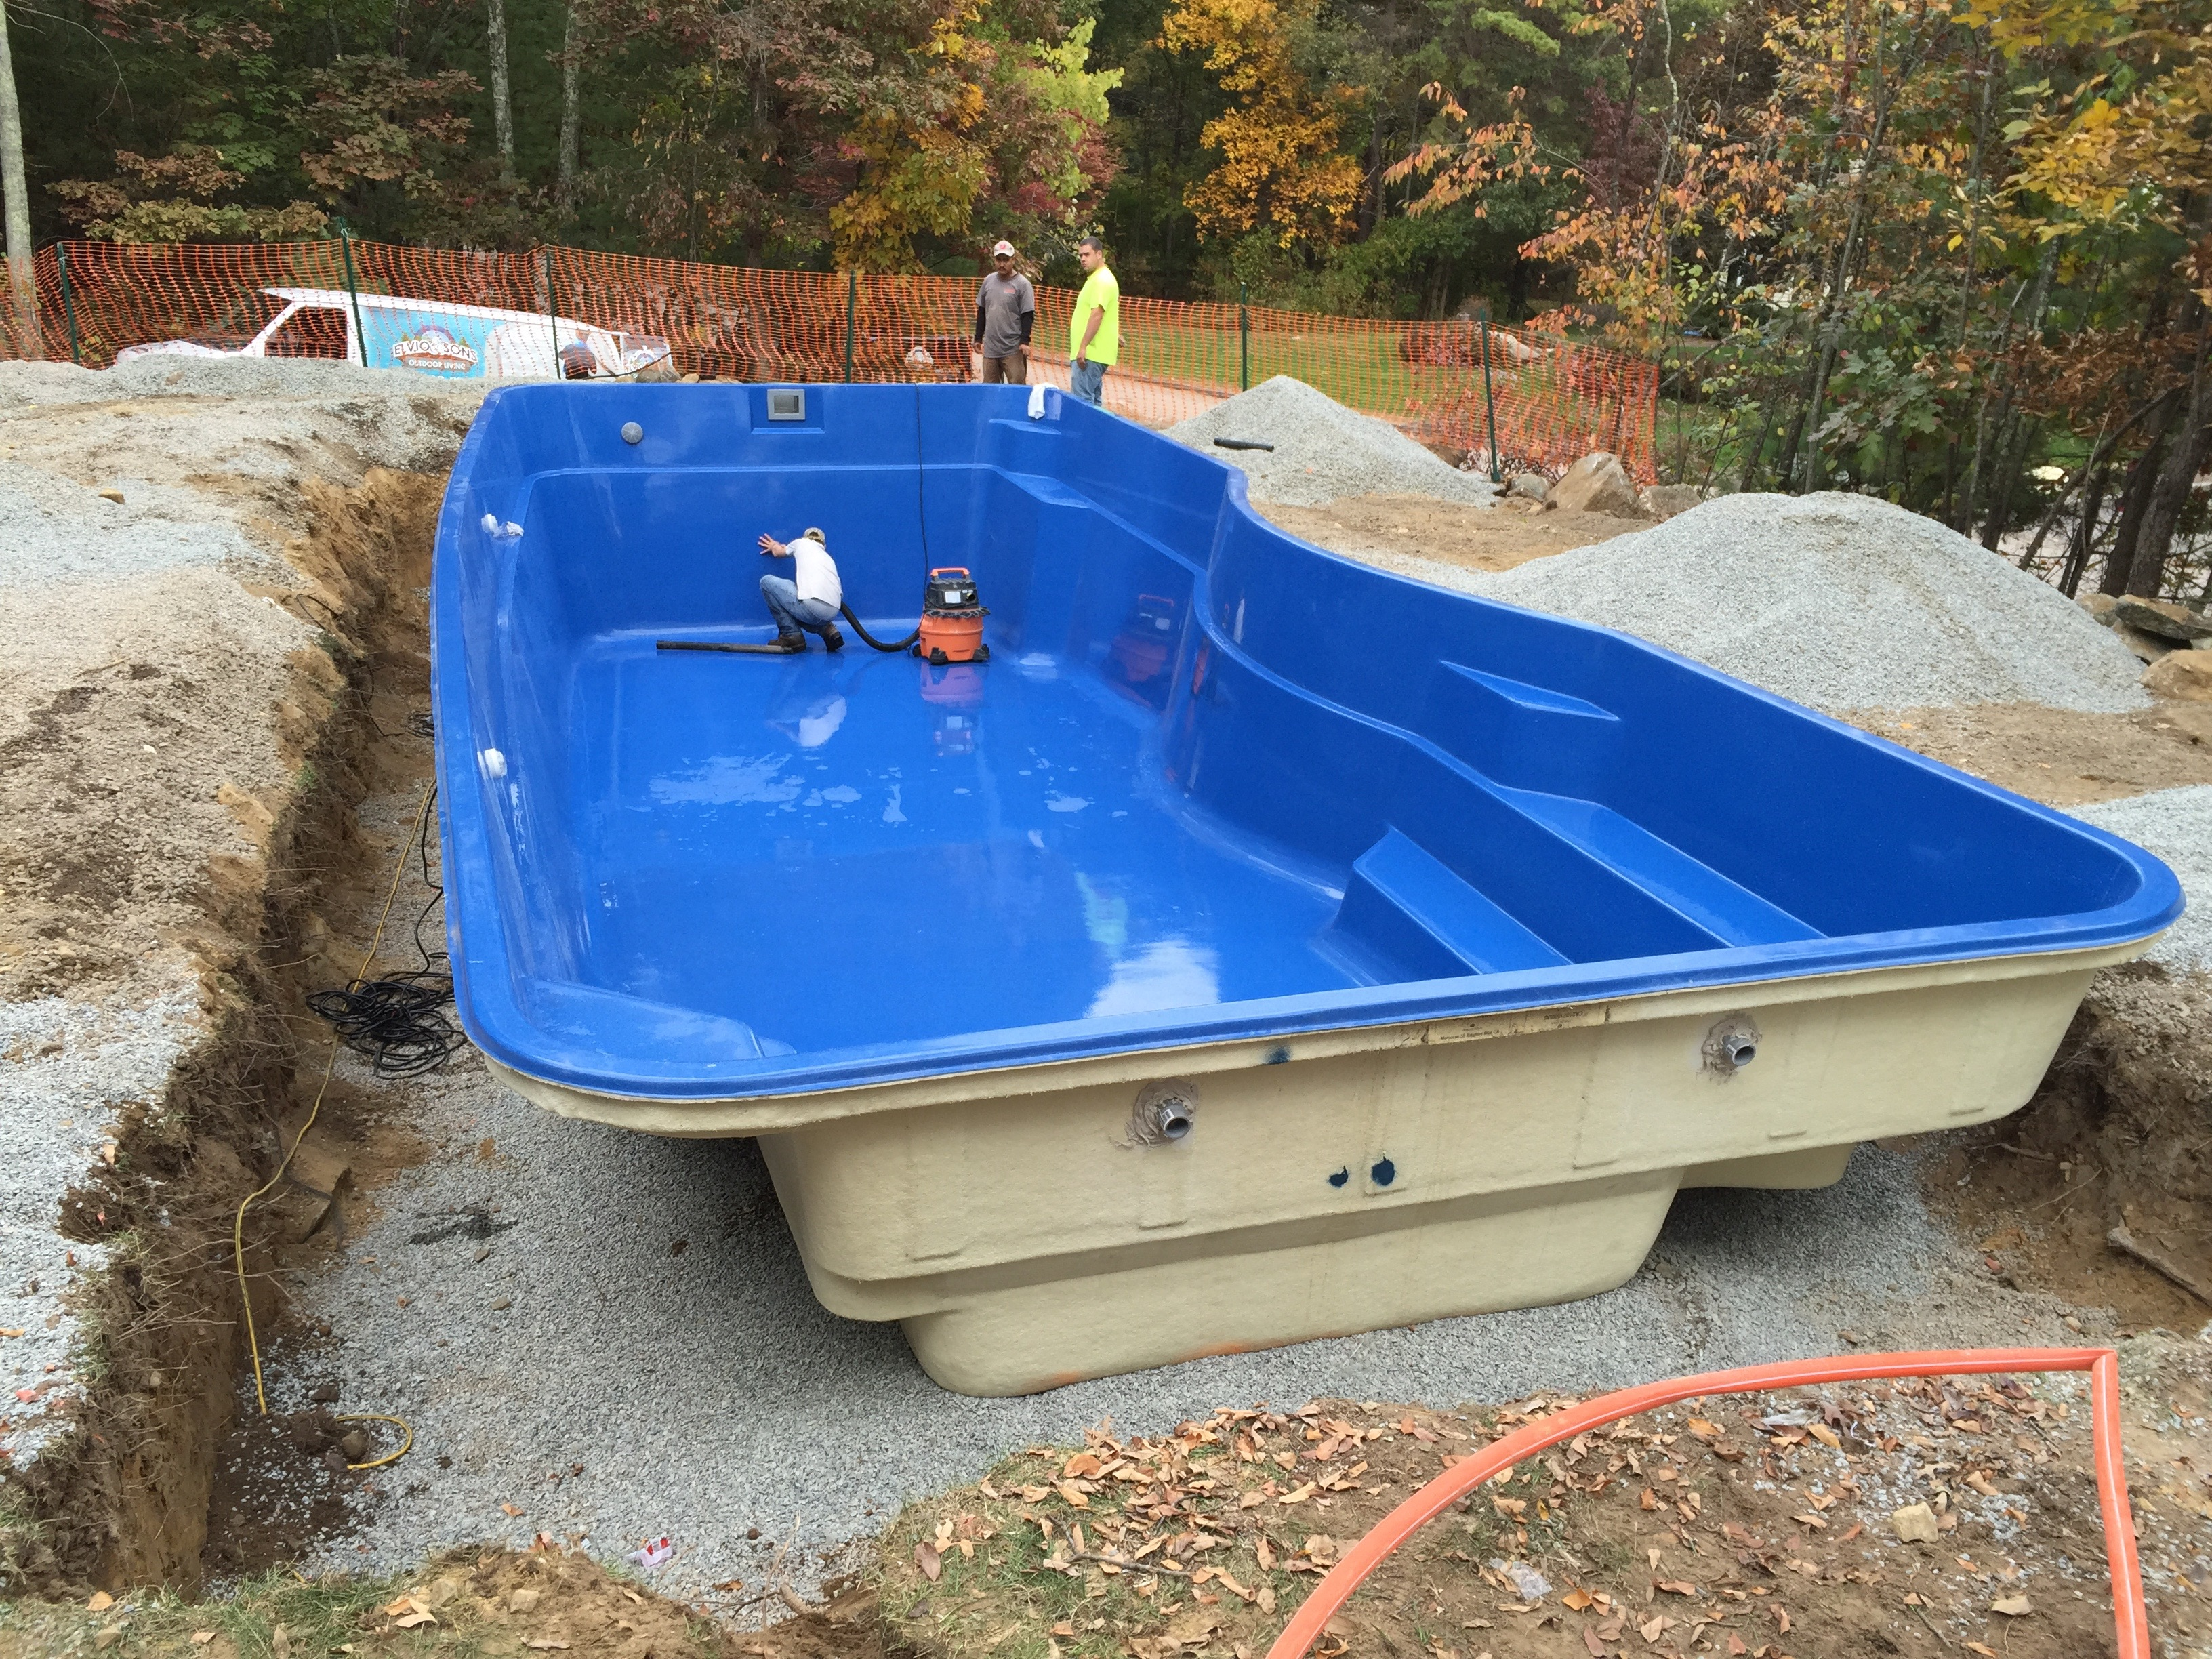 Installation of moroccan fiberglass pool elvio and sons for Fiberglass pool installation